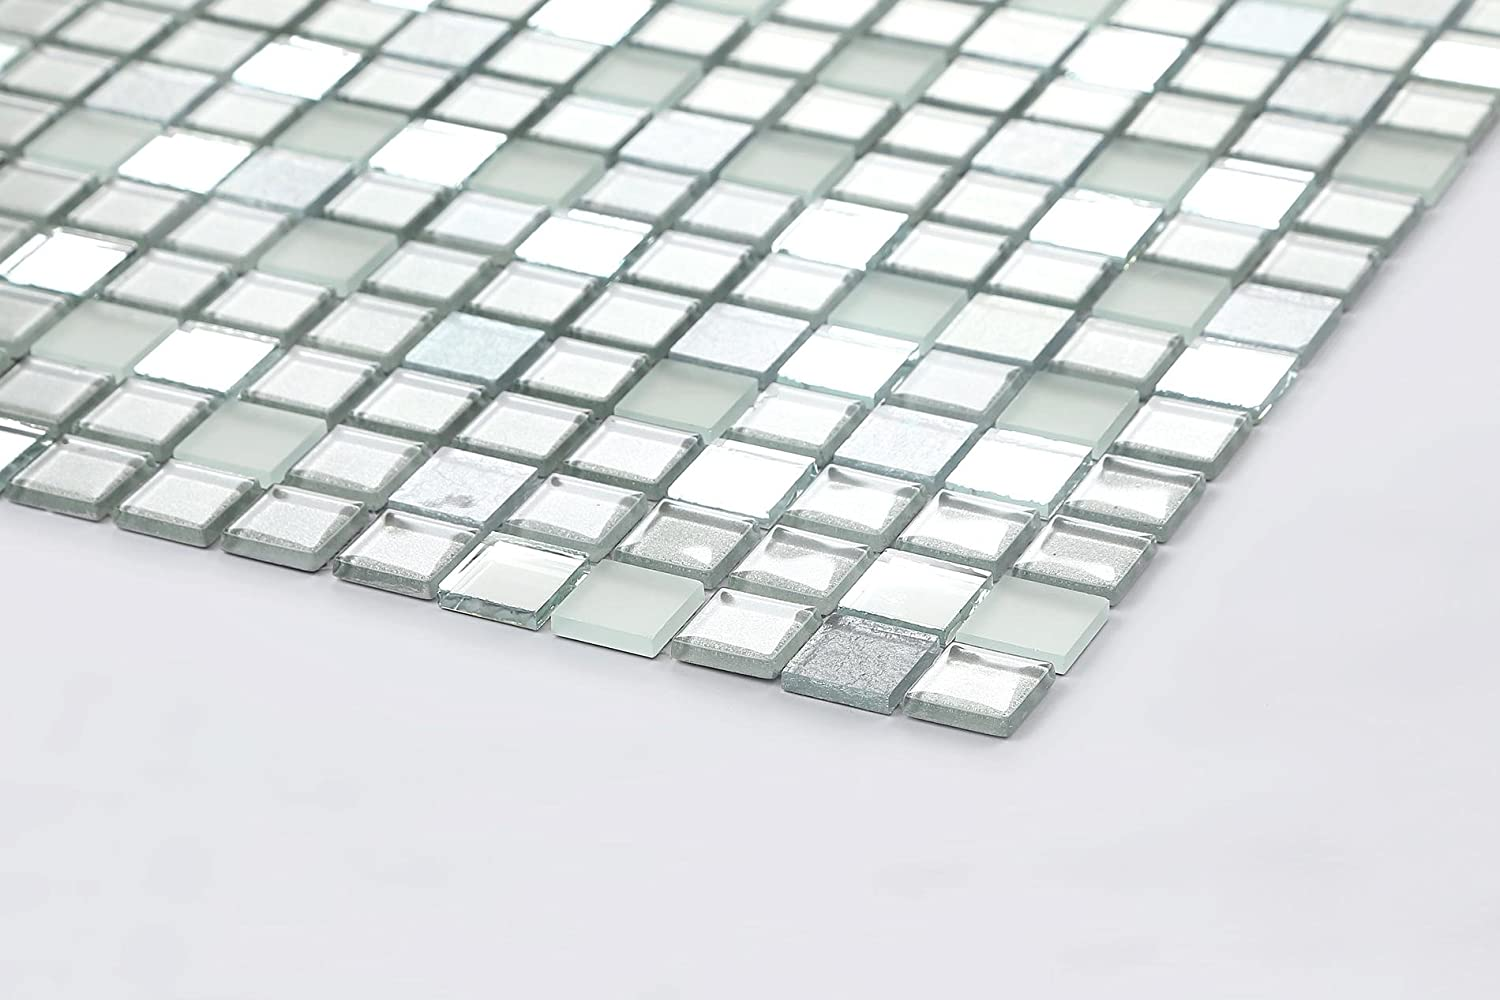 30x30cm Silver Mirror Frosted Glitter Mix Glass Mosaic Tiles Sheet MT0046 by Grand Taps